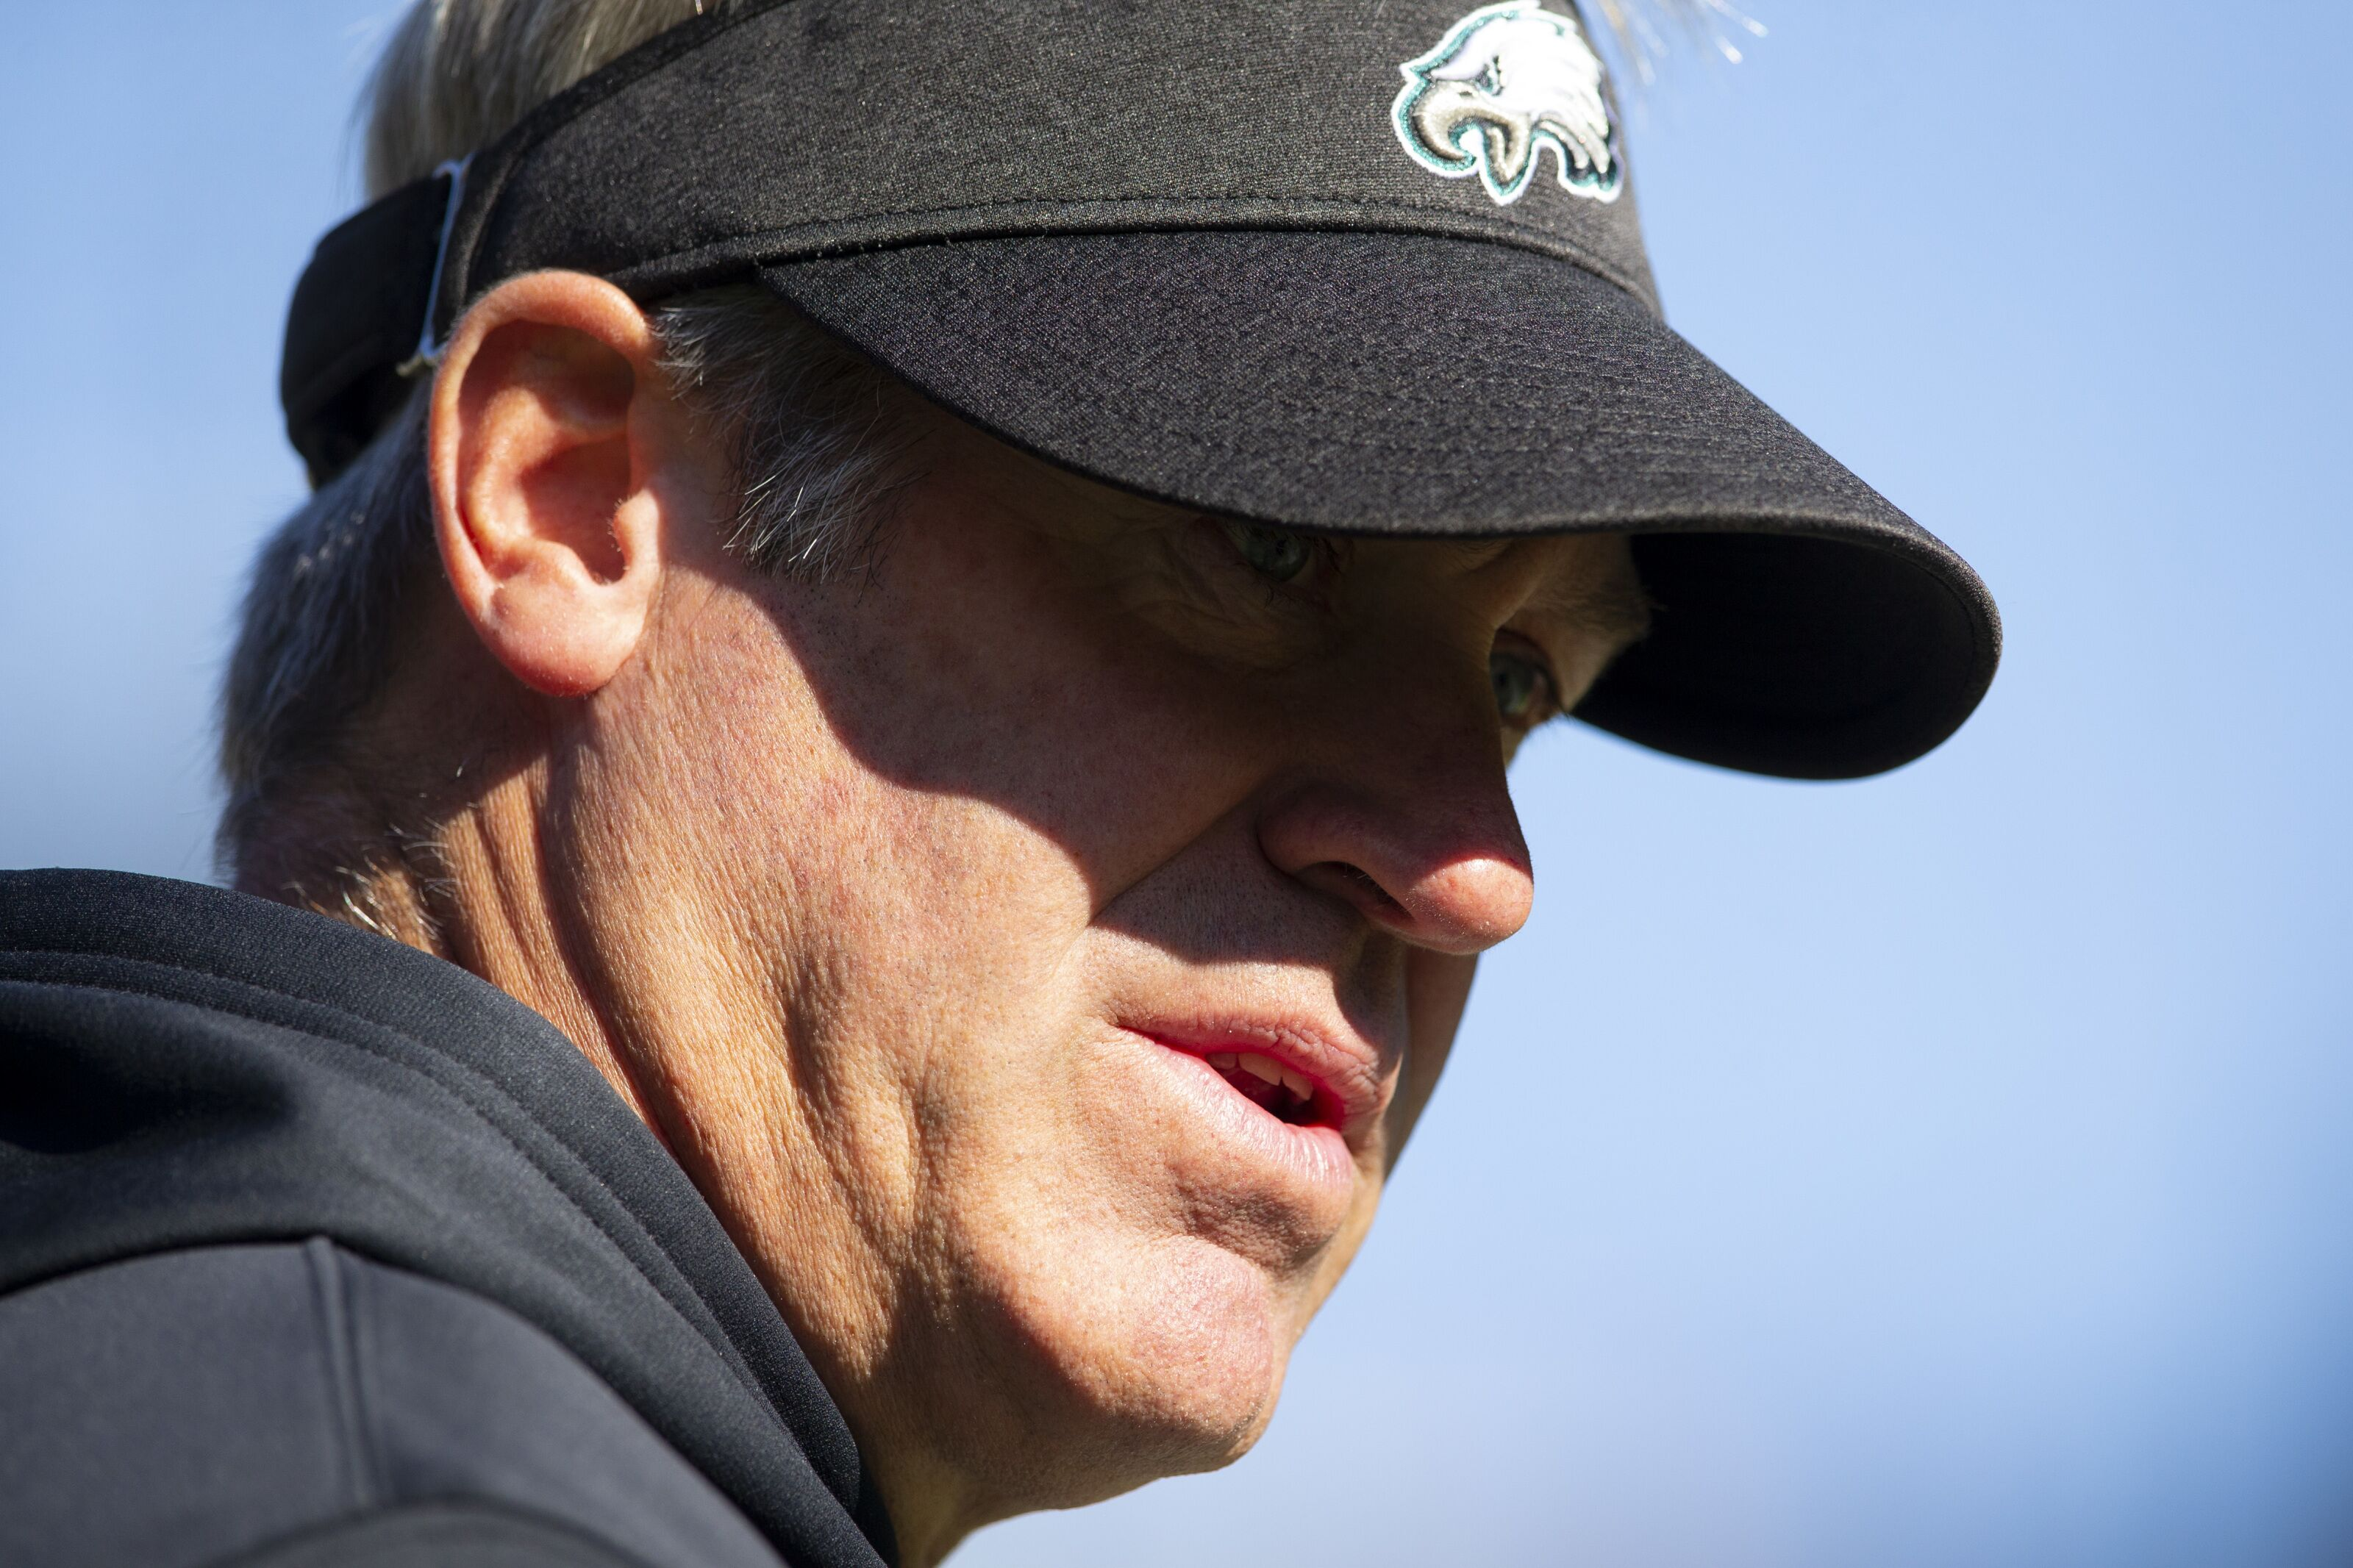 Philadelphia Eagles have turned into Dr. Jekyll and Mr. Hyde